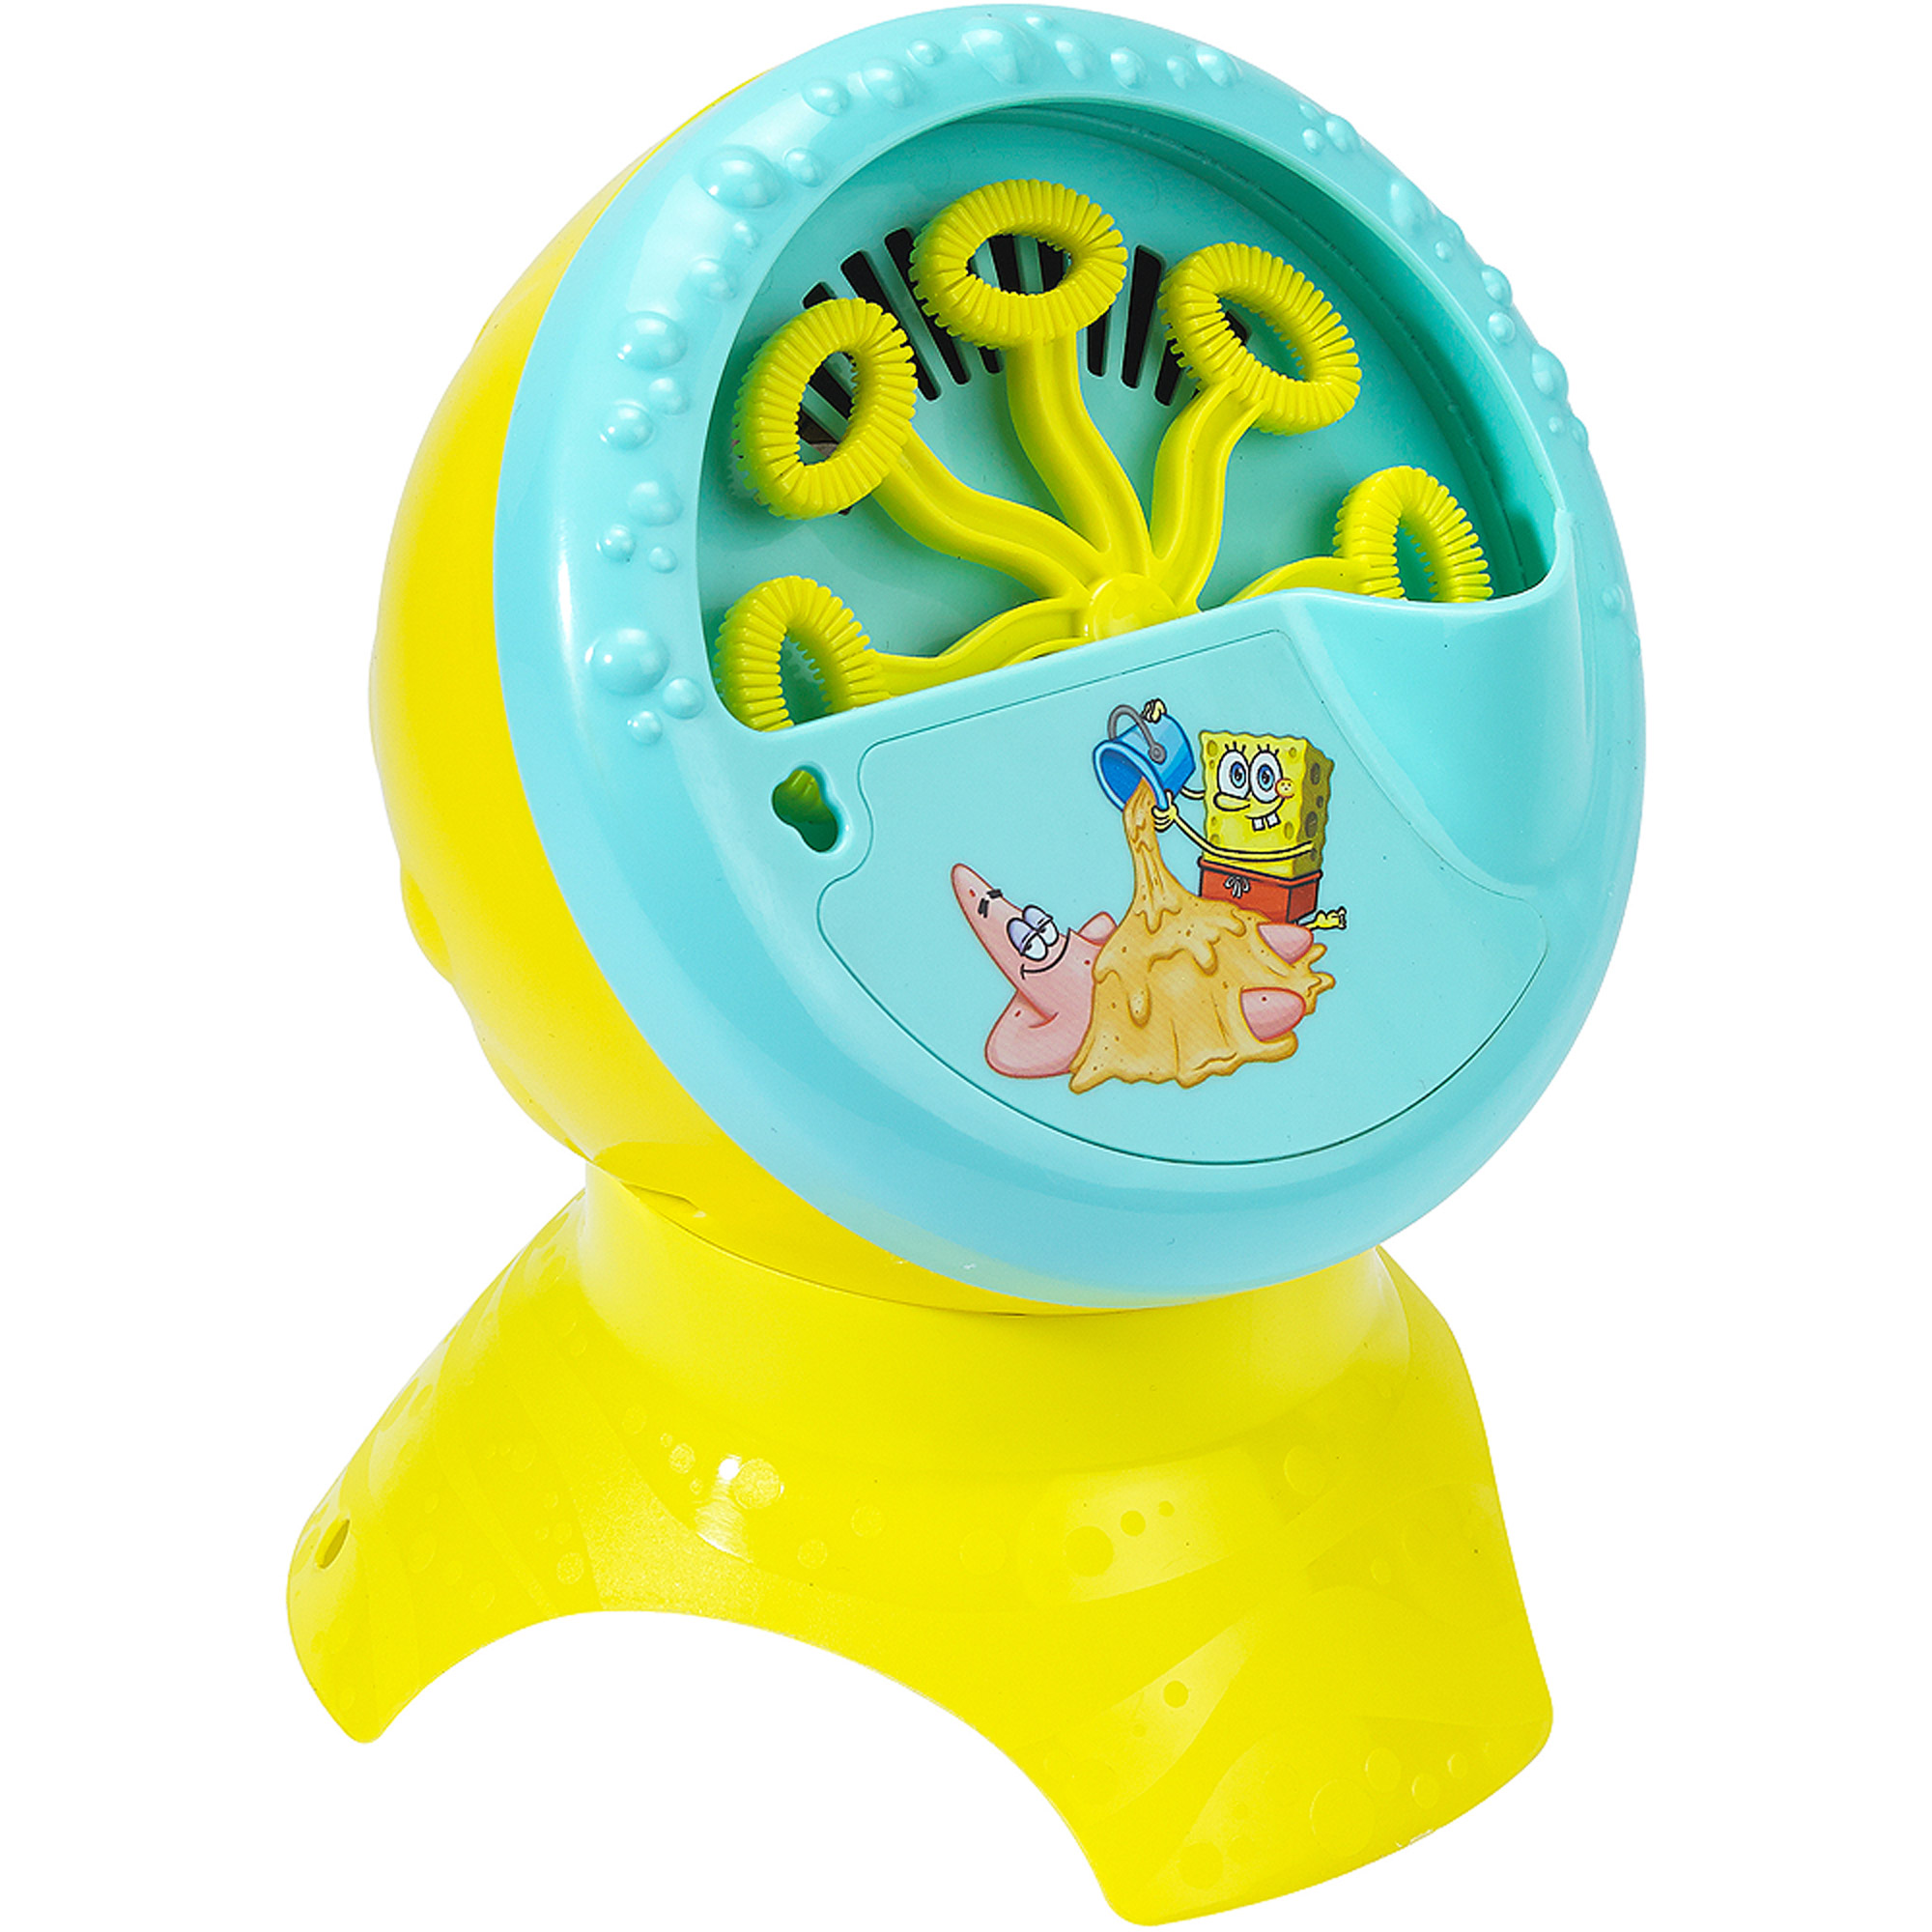 Little Kids Bubble Machine, SpongeBob